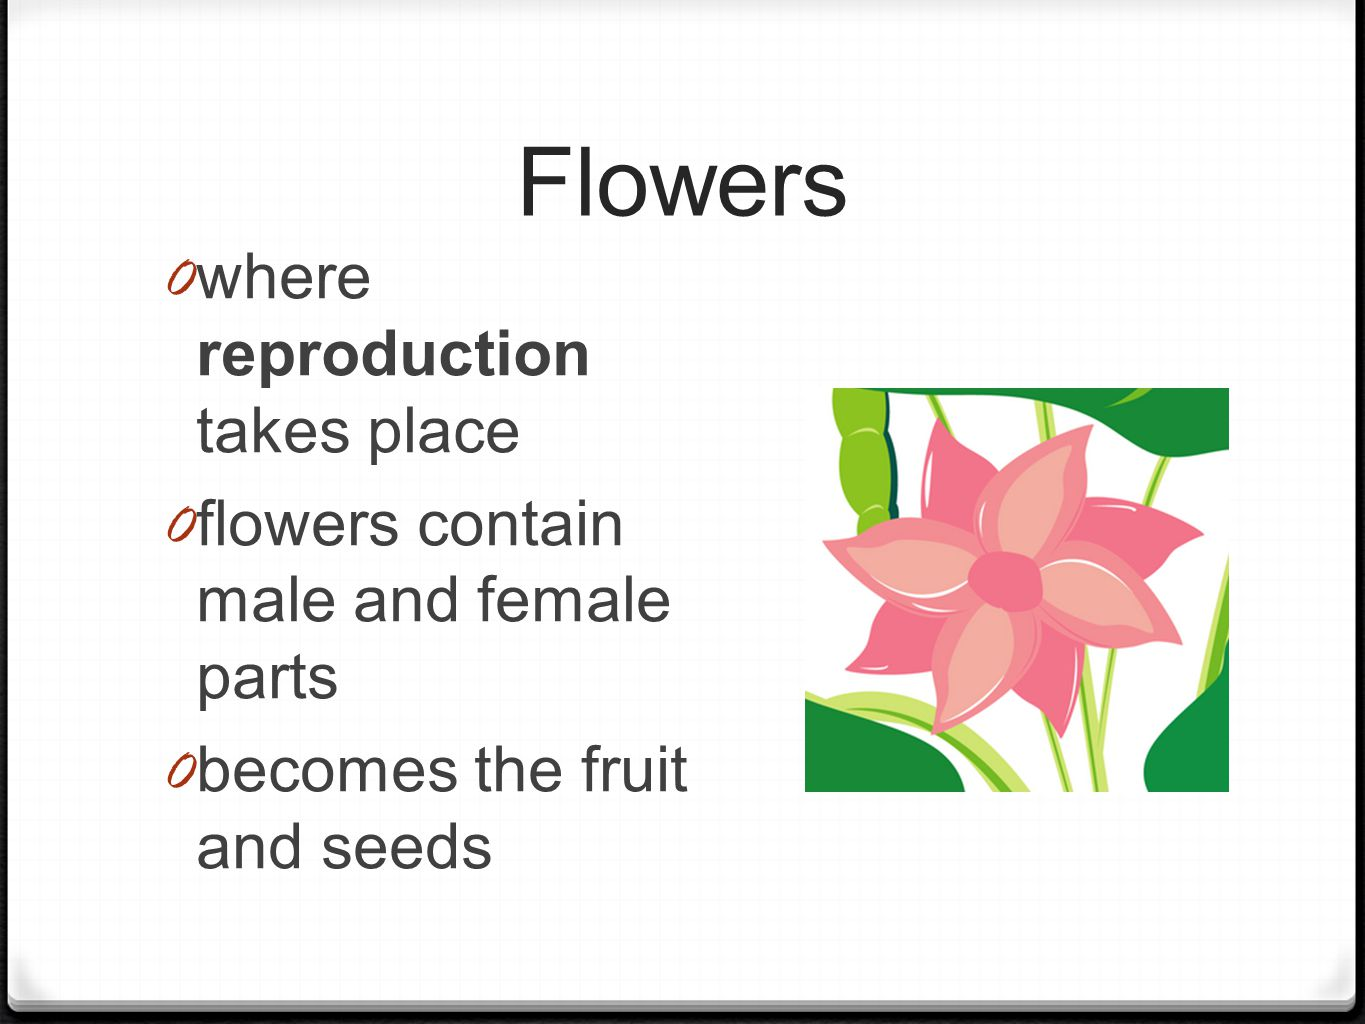 Flowers 0 where reproduction takes place 0 flowers contain male and female parts 0 becomes the fruit and seeds